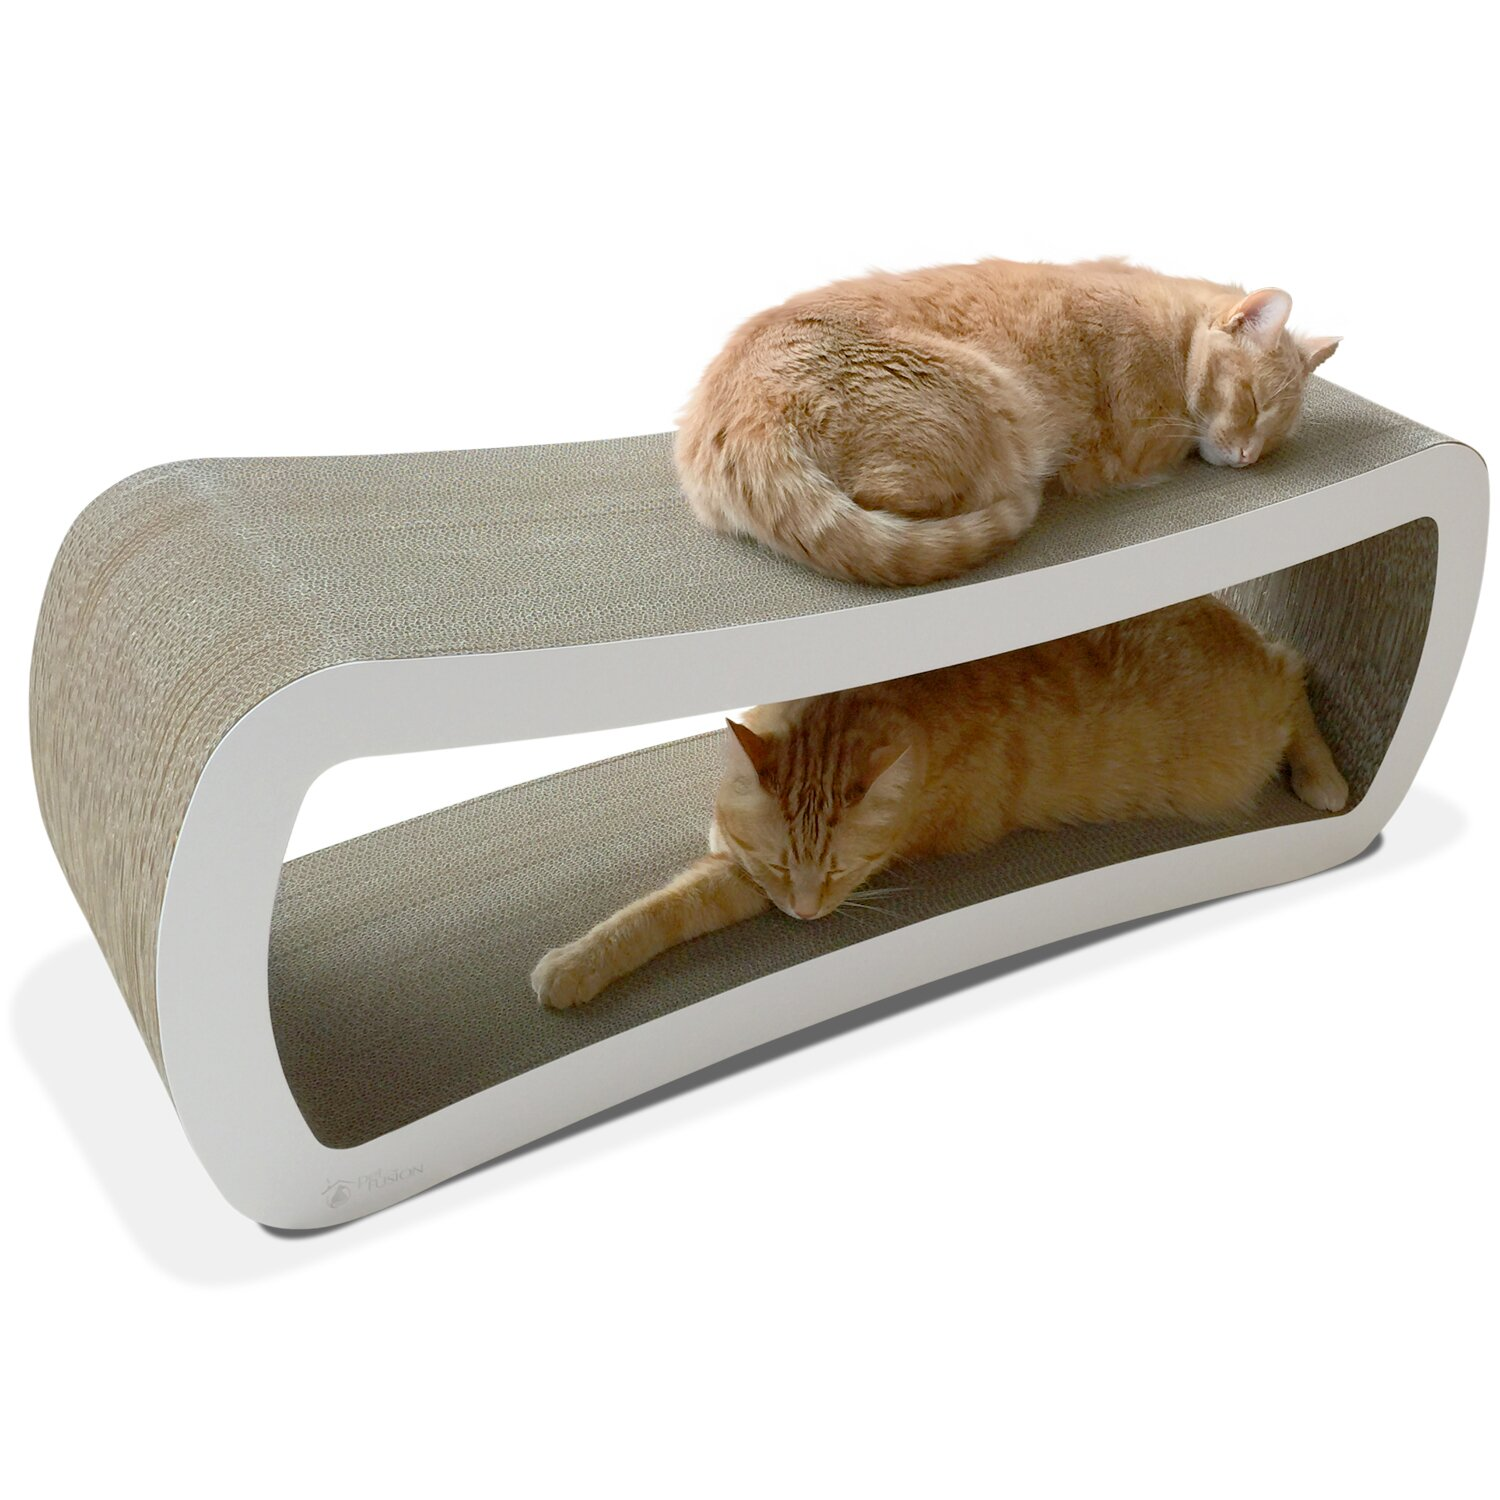 PetFusion Jumbo Cat Scratcher Lounge amp Bed amp Reviews Wayfair : PetFusion Jumbo Cat Scratcher Lounge and Bed from www.wayfair.com size 1500 x 1500 jpeg 212kB